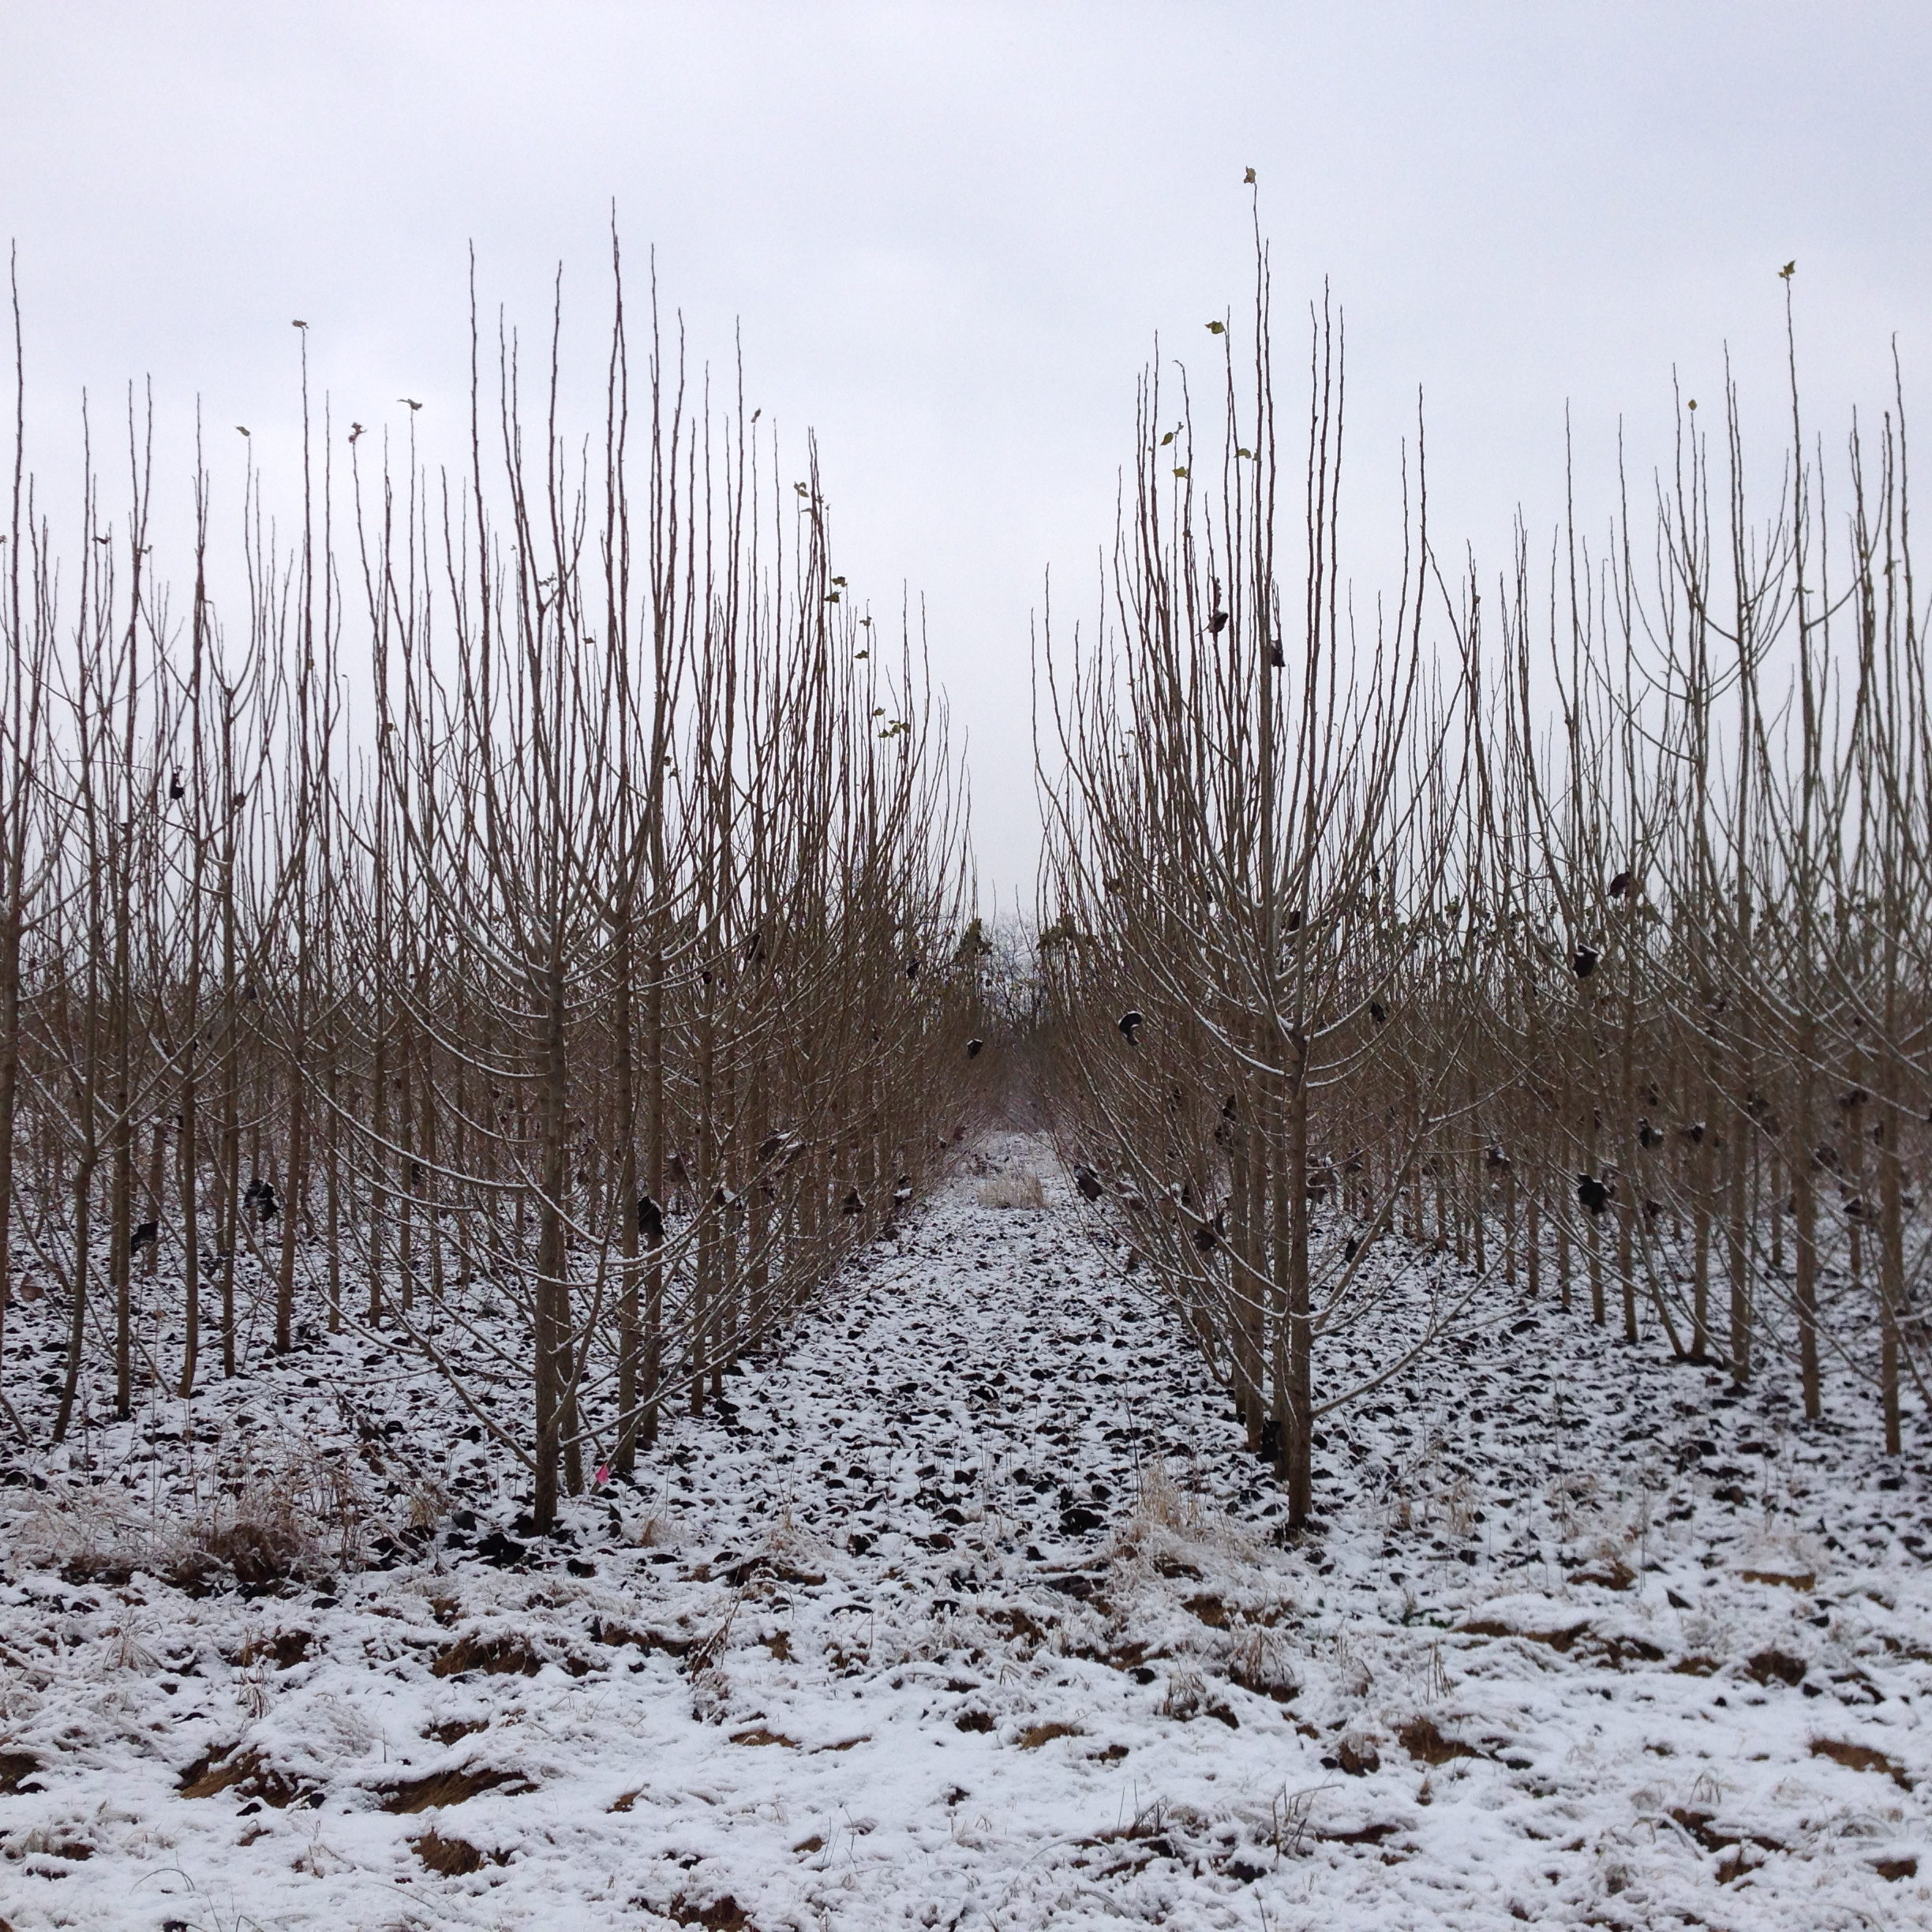 poplar orchard in winter with snow on ground